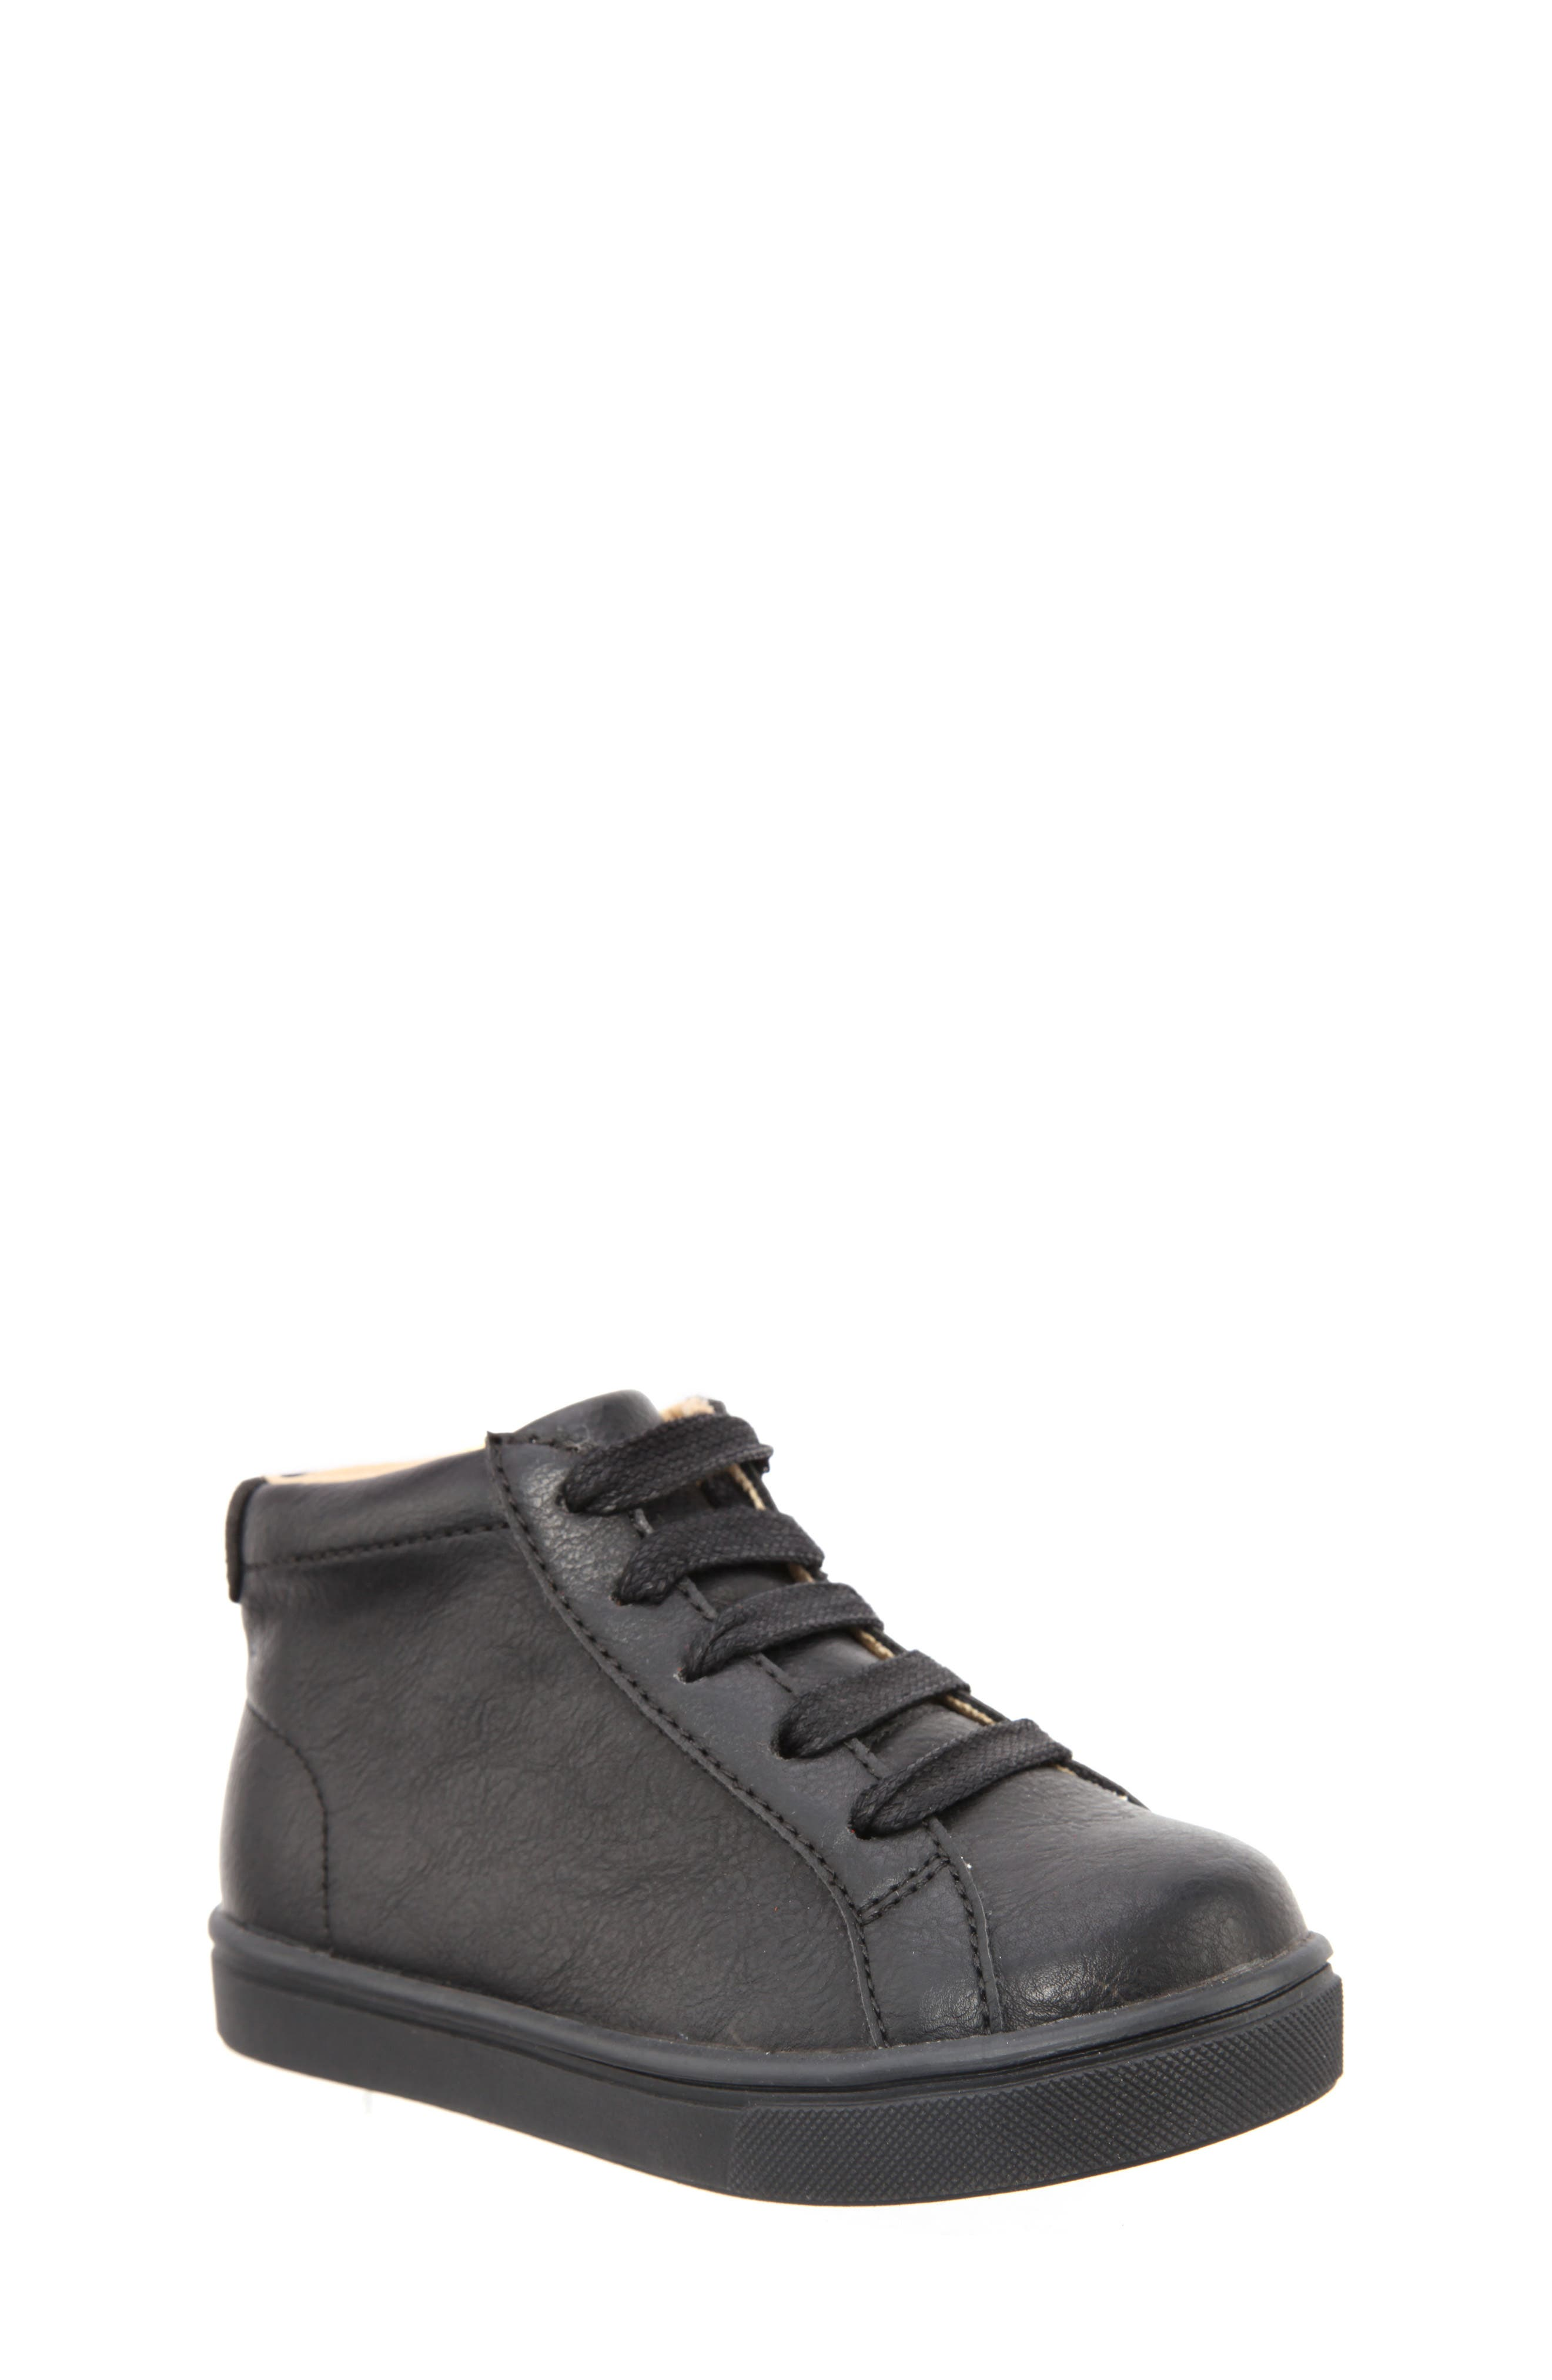 Ricky Mid Top Zip Sneaker,                         Main,                         color,